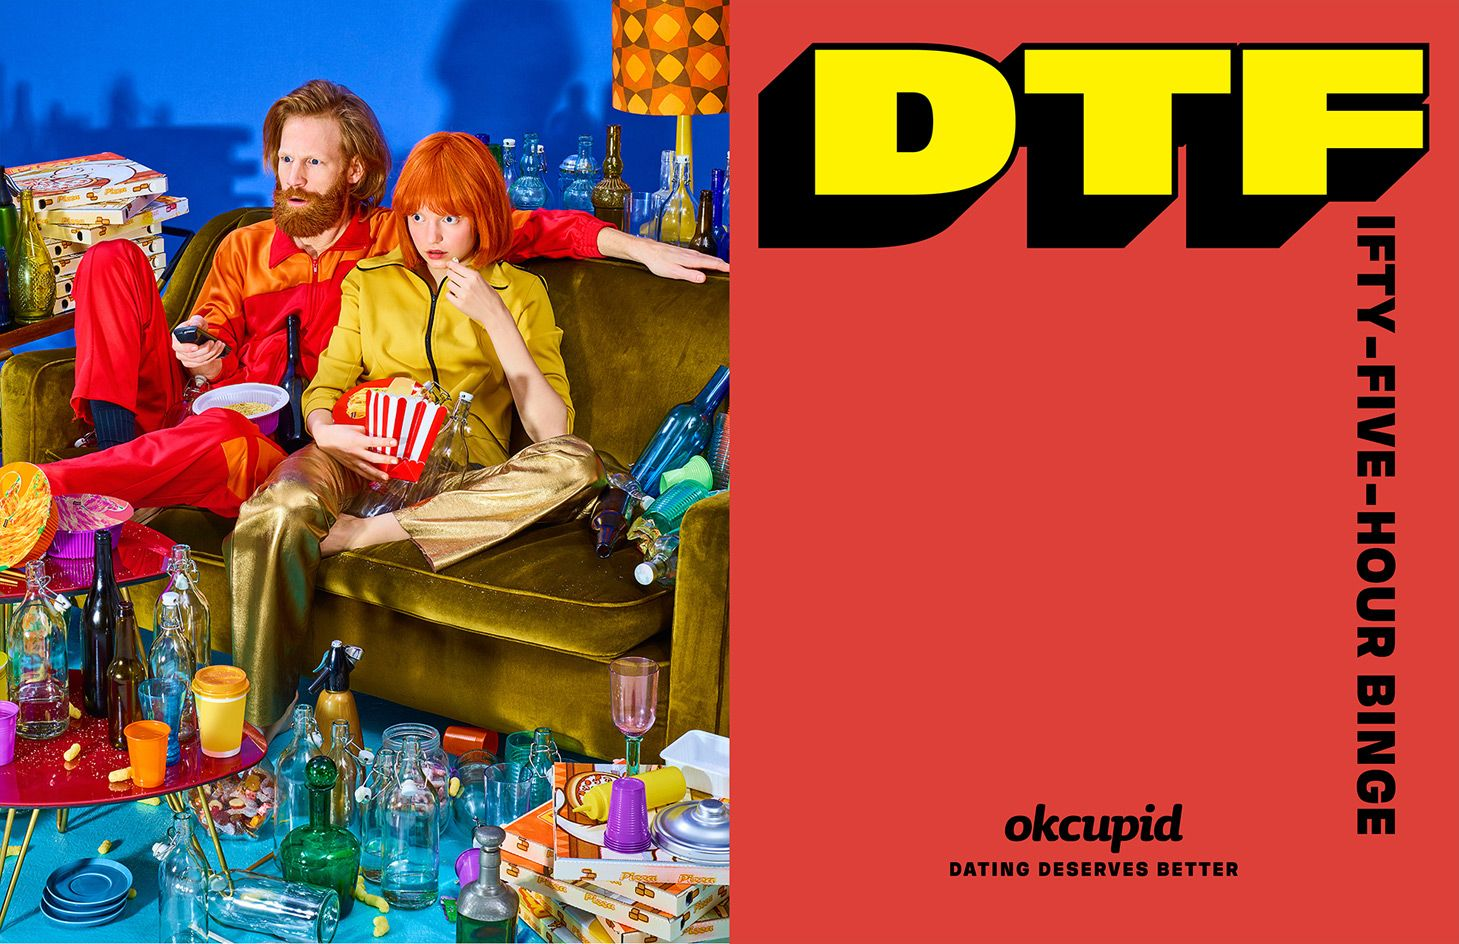 Open Letter The Artists Behind Toiletpaper Are Dtf With Okcupid Okcupid Best Advertising Campaigns Campaign